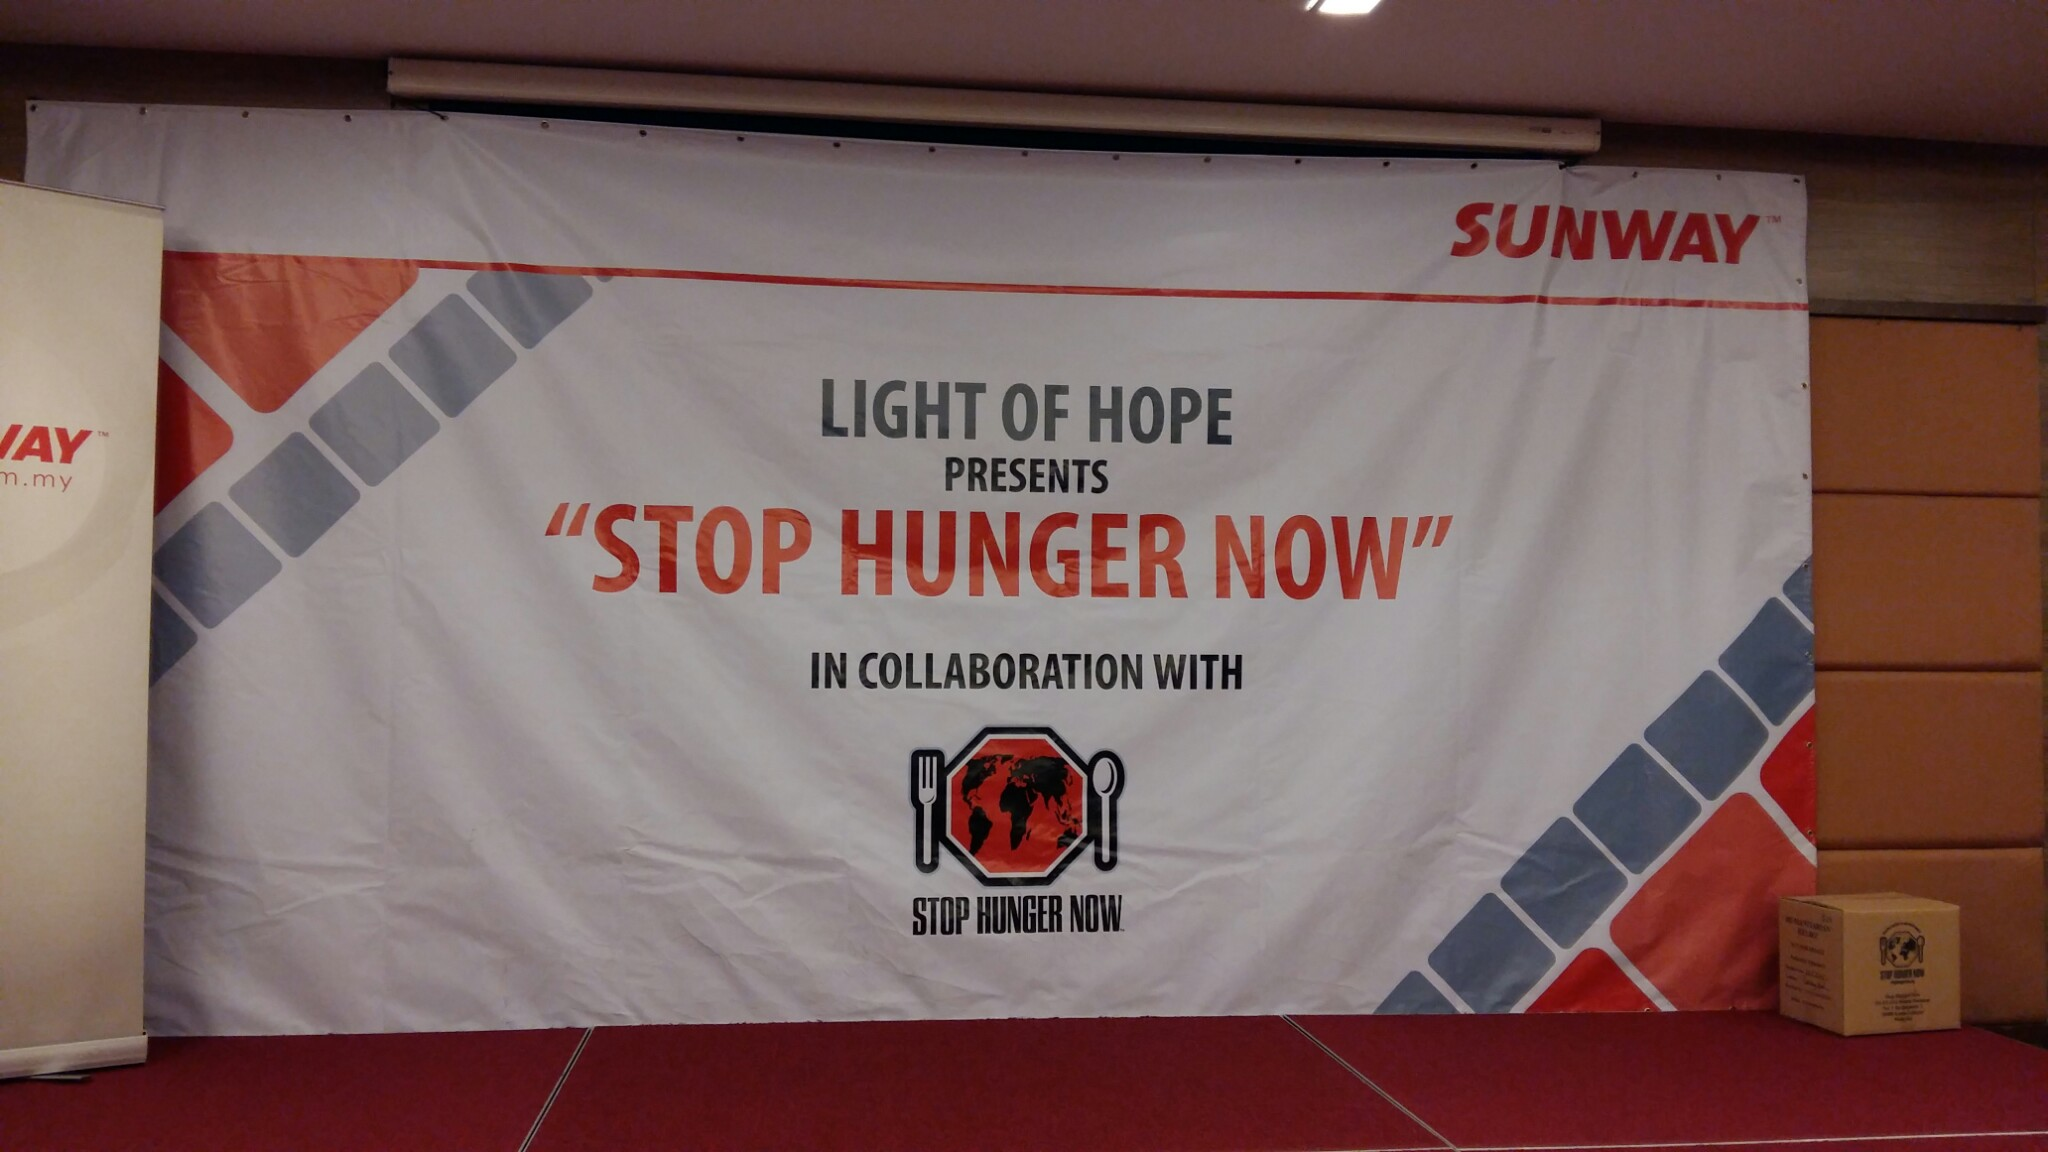 Stop Hunger Now Campaign sponsored by Sunway Group